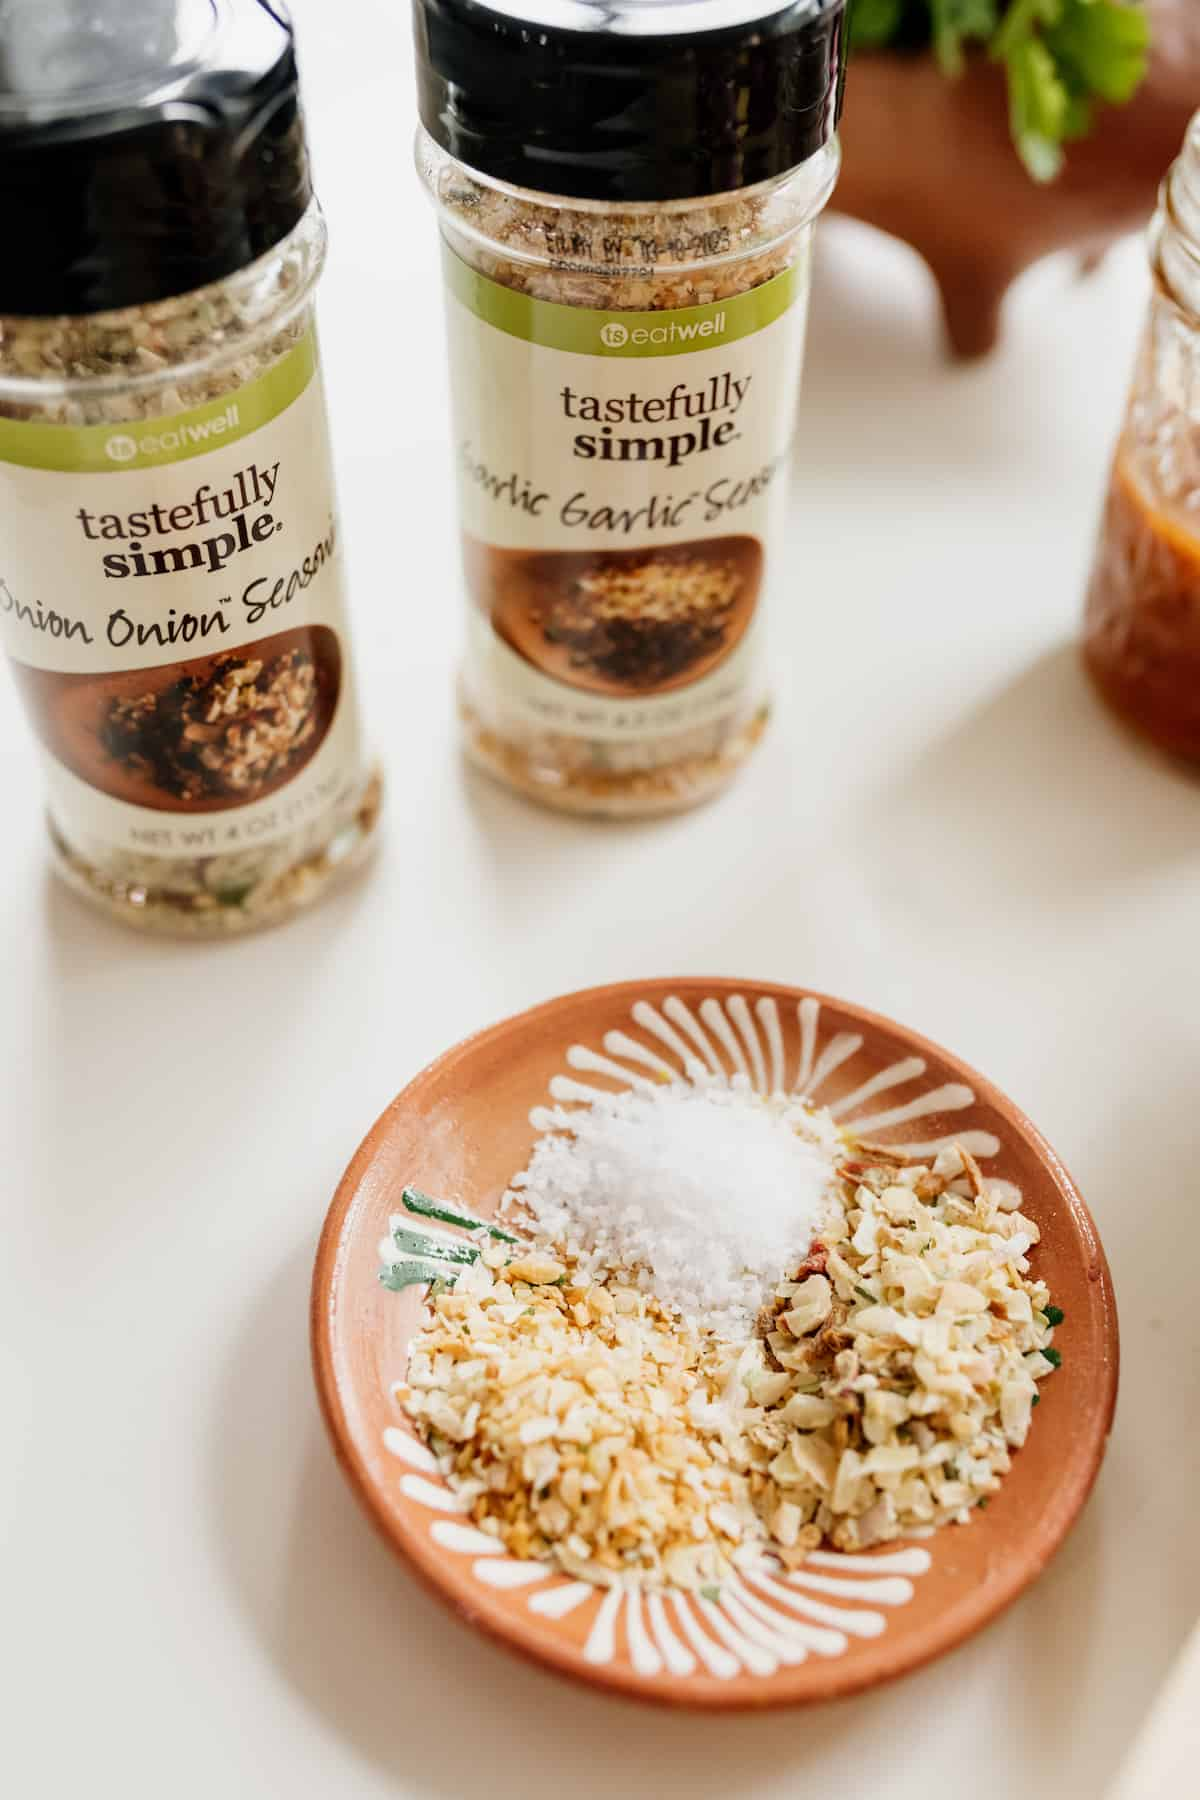 tastefully simple seasoning blends in their bottles and a small dish of spices